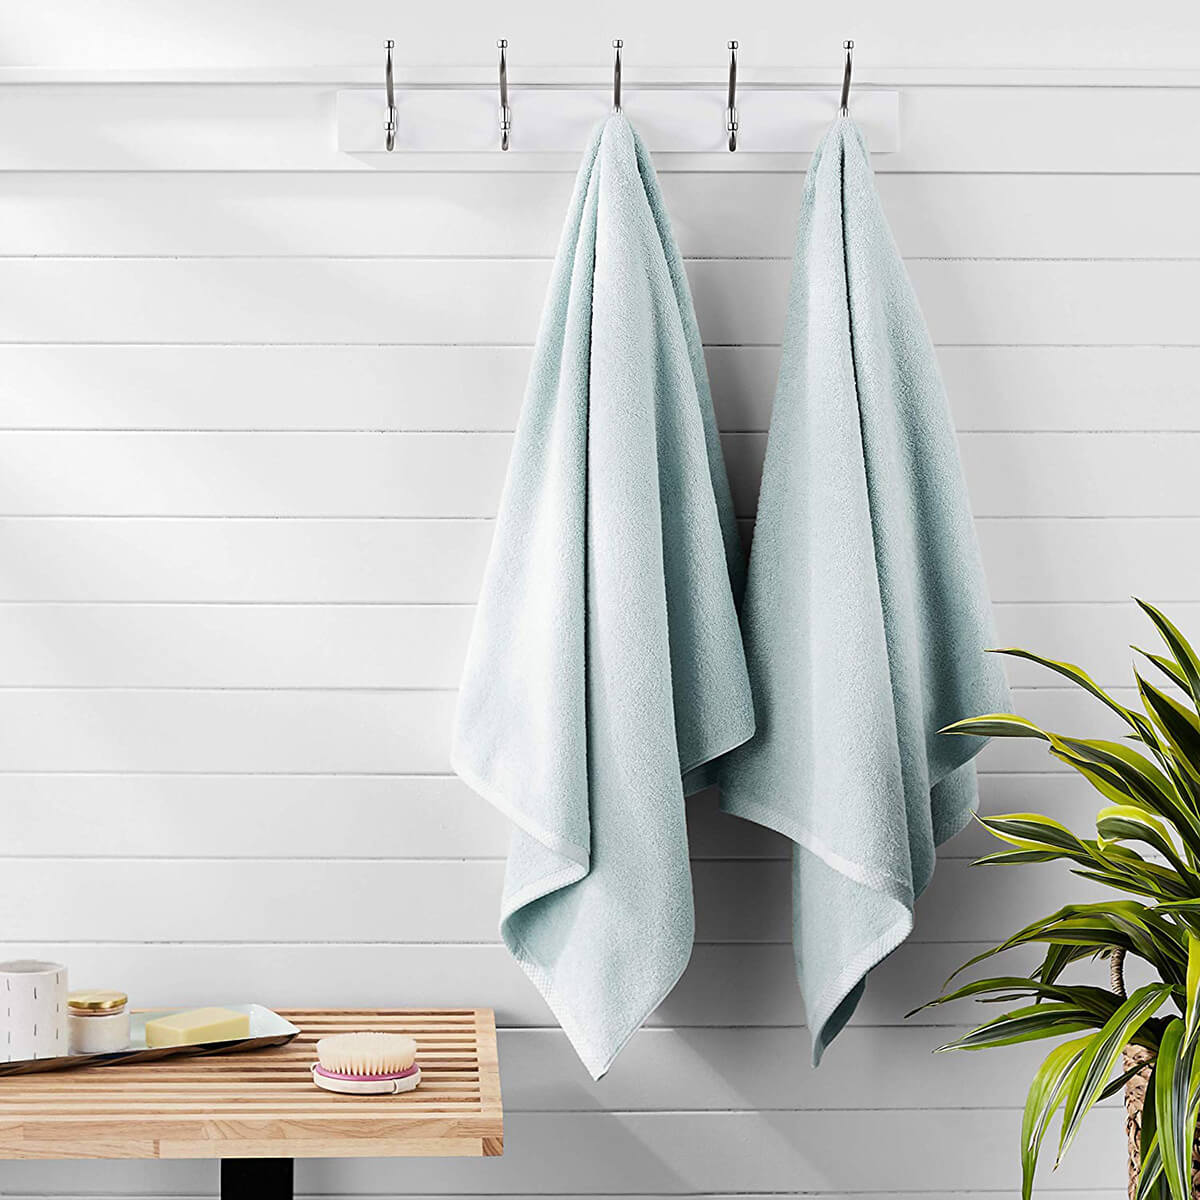 Quick-Dry Towels by AmazonBasics